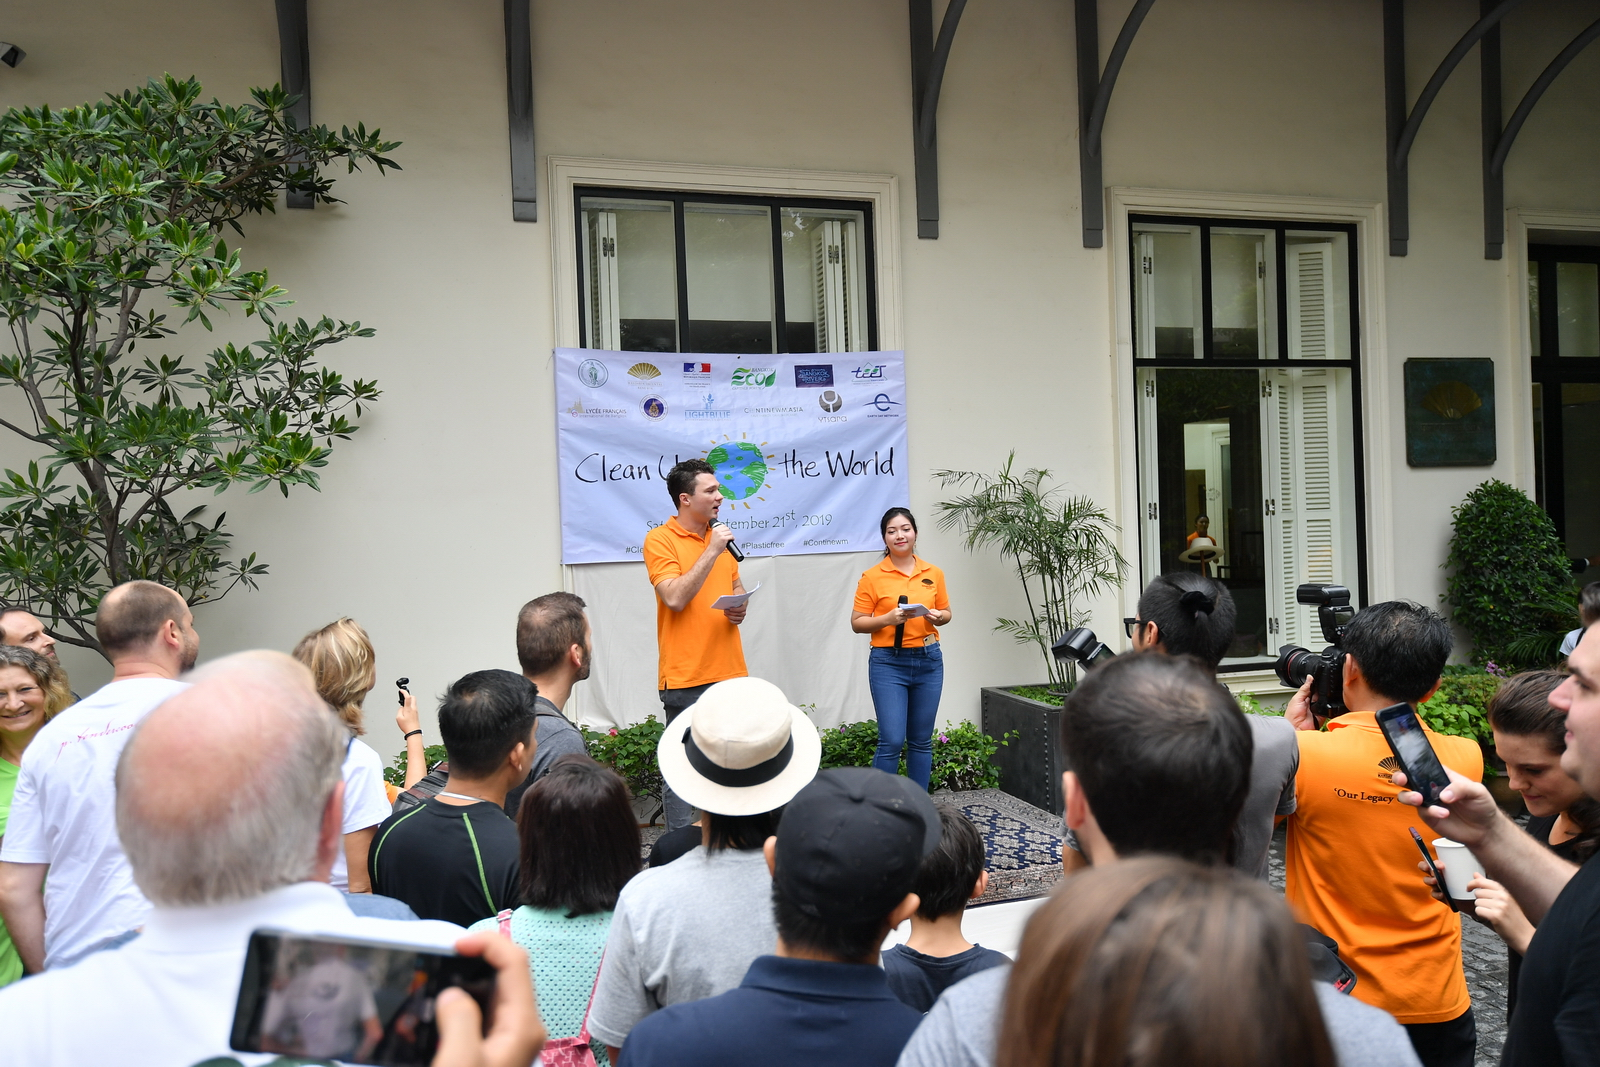 PTendercool-Event-Clean Up The World-190921-004